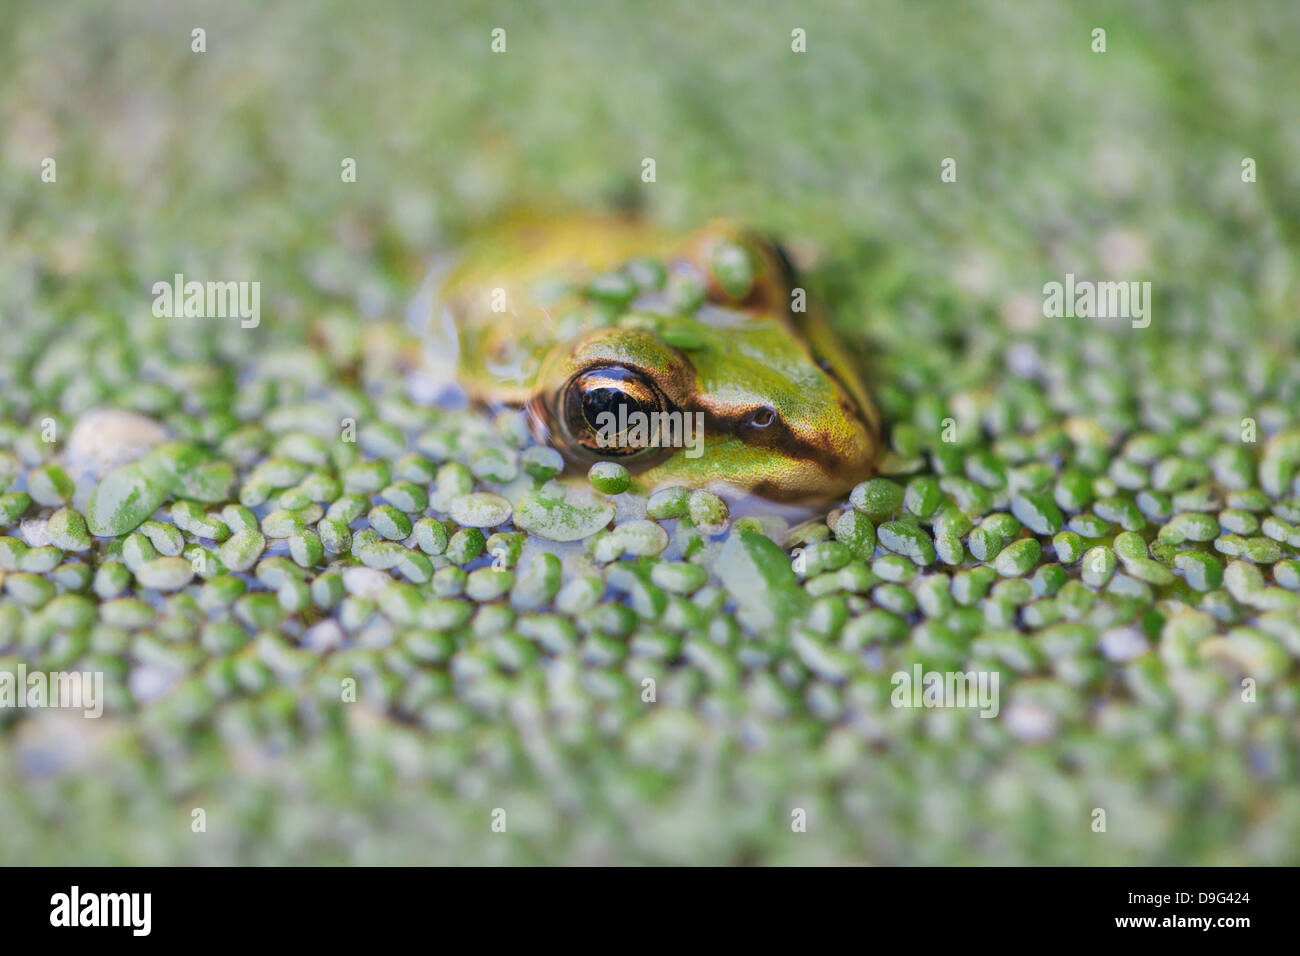 Close-up of European common frog (Rana temporaria), North Brabant, The Netherlands - Stock Image